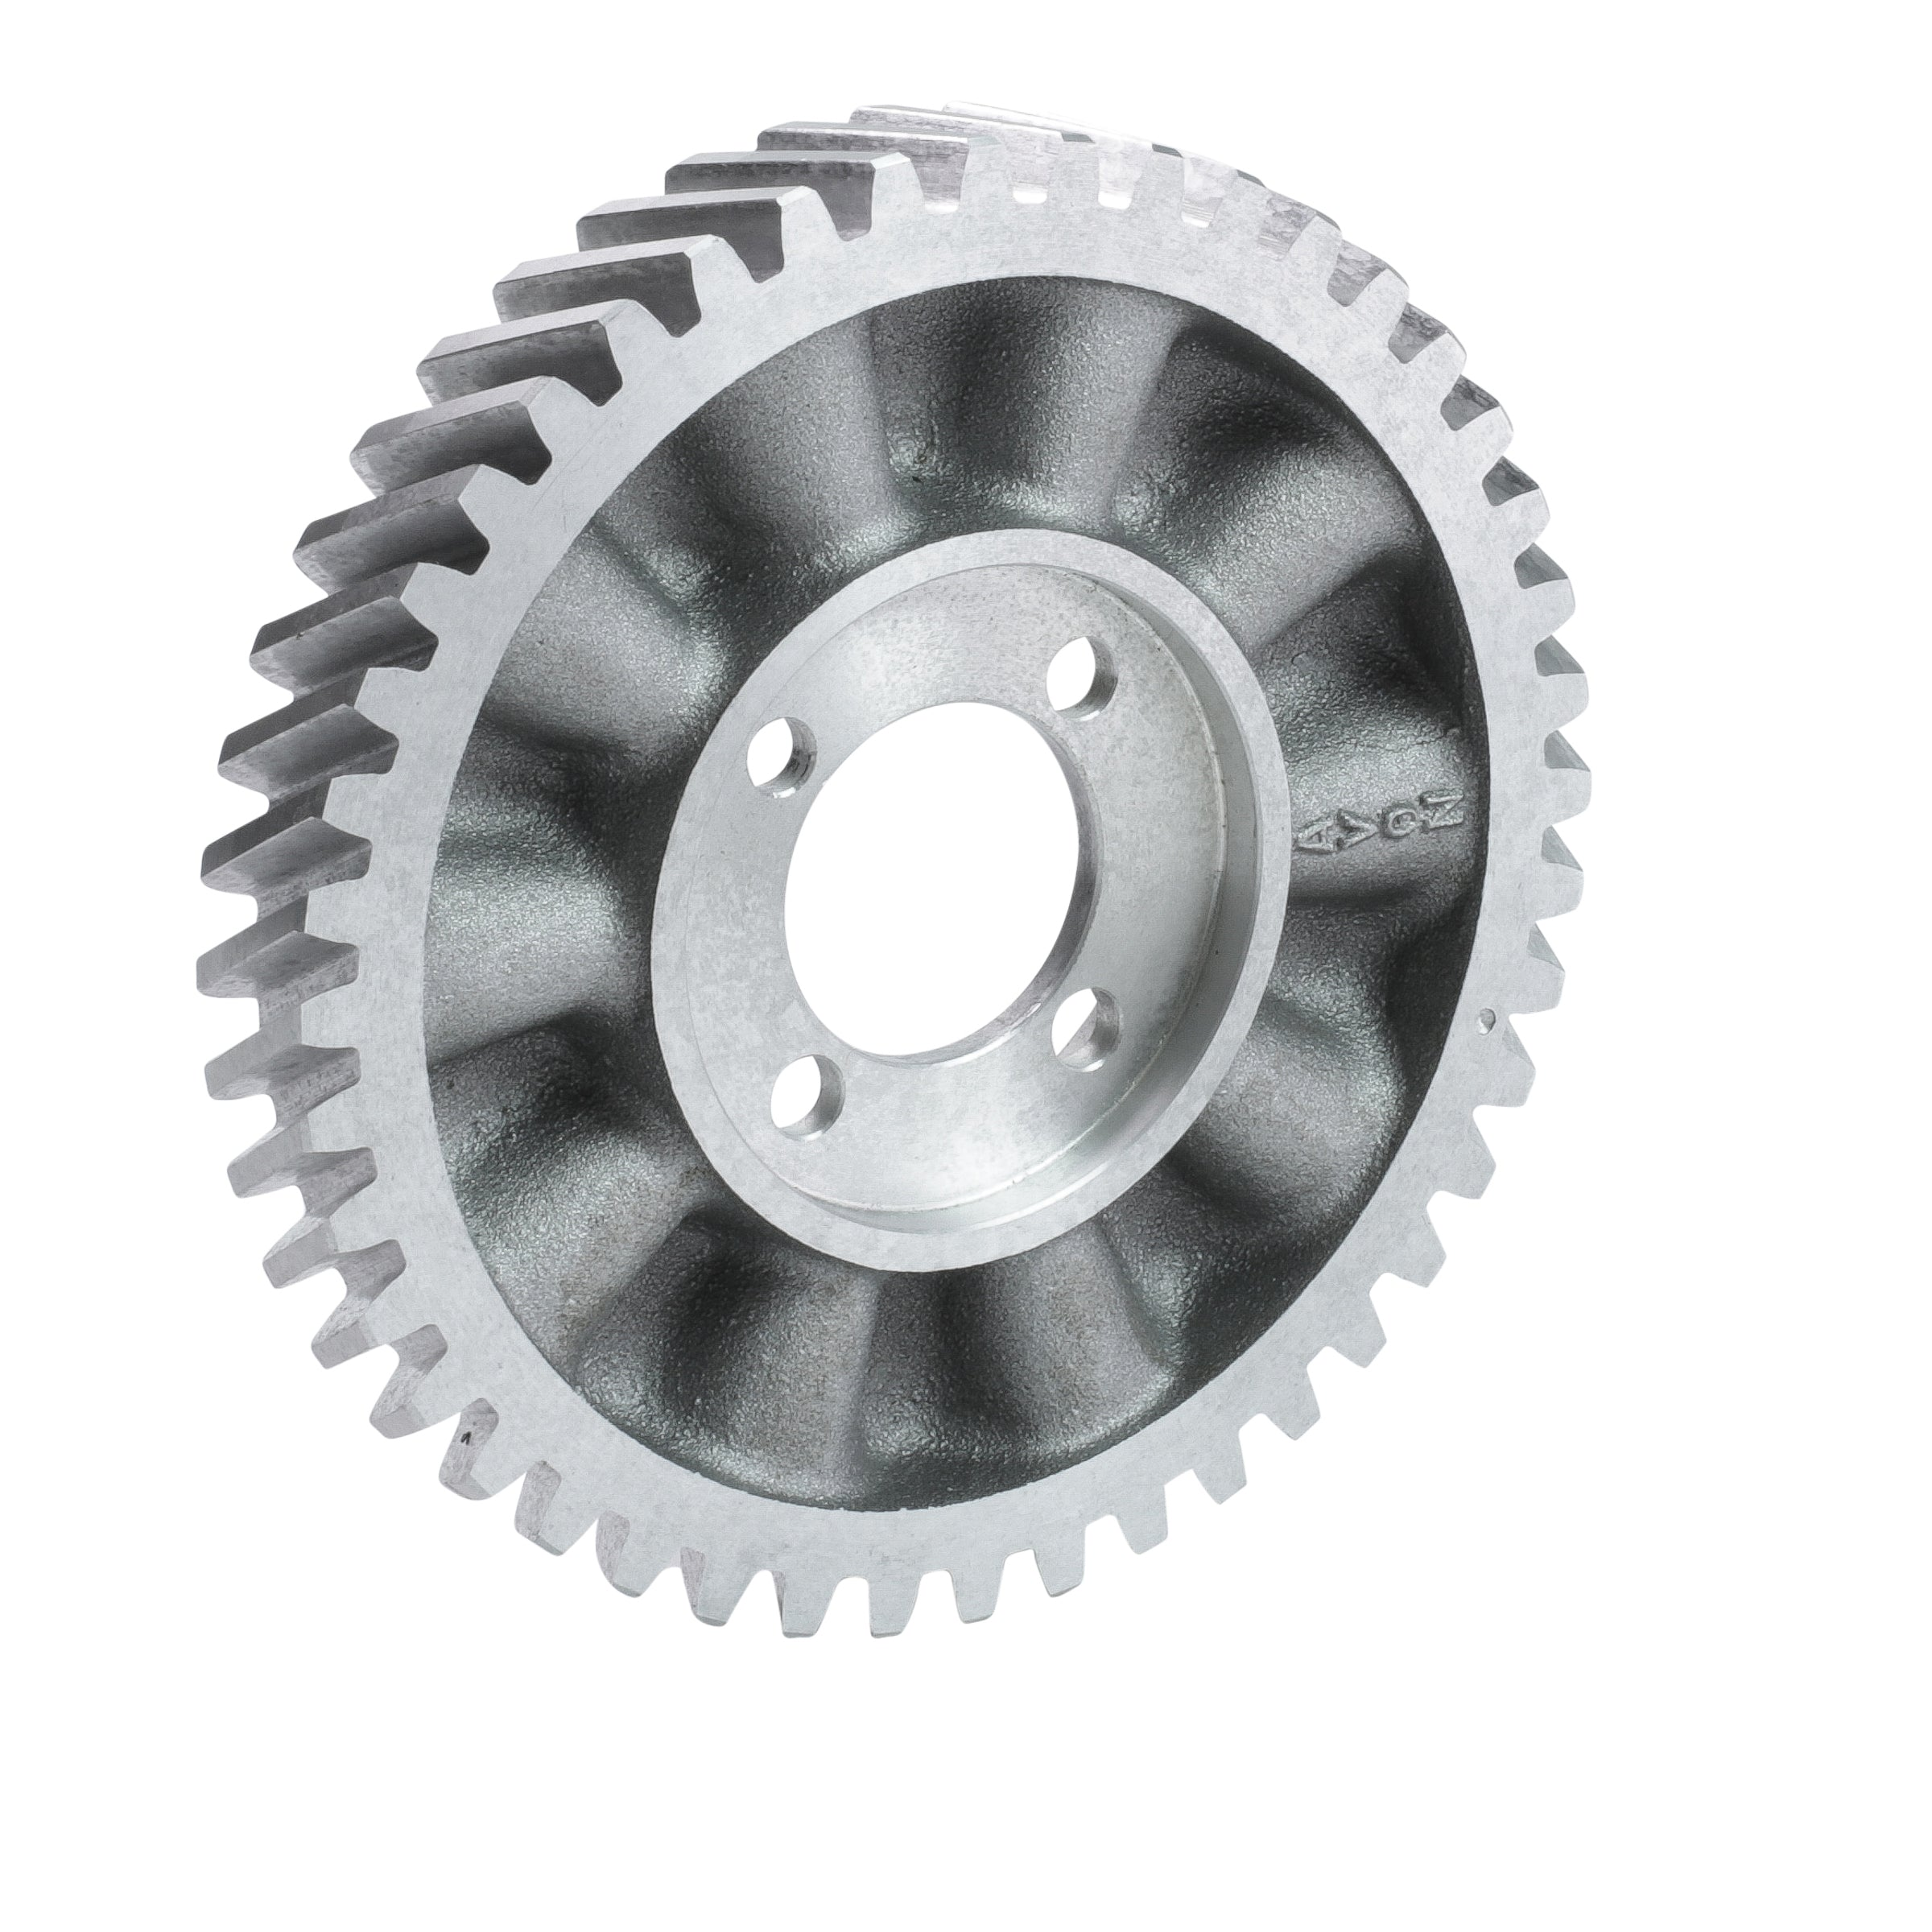 Camshaft Timing Gear (Aluminum) • 1949-53 Ford